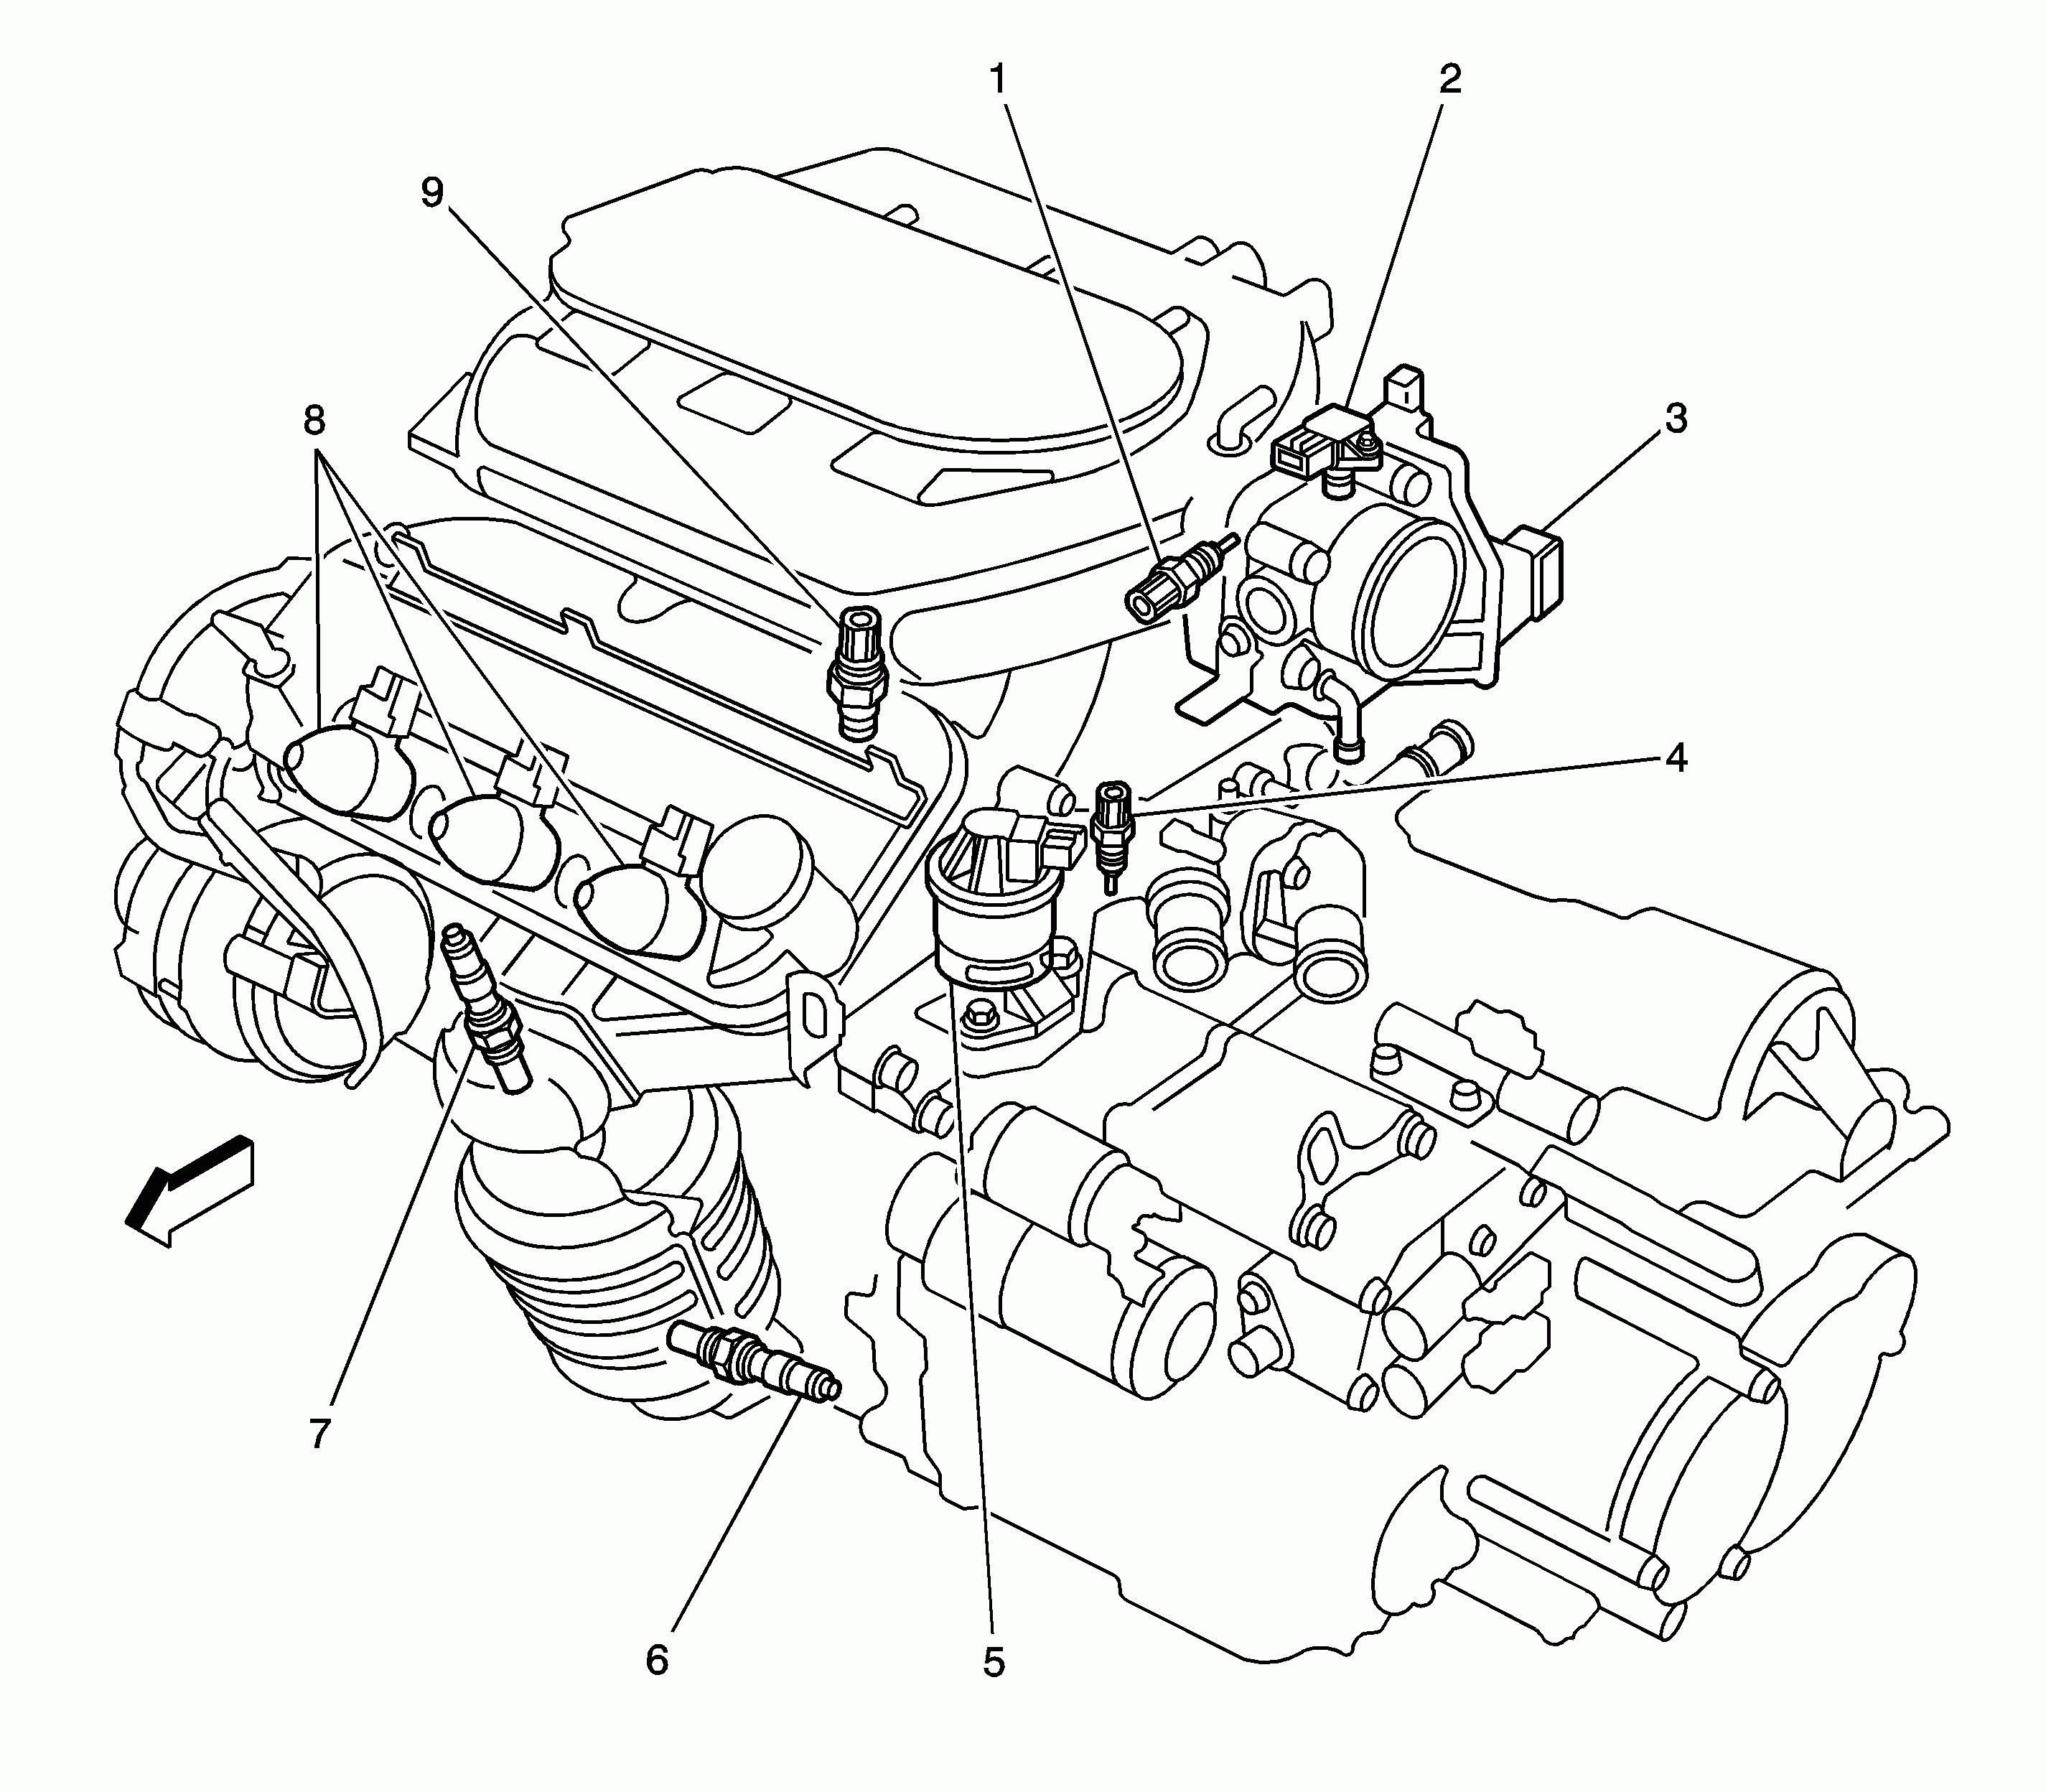 2003 Pontiac Grand Am V6 Engine Diagram Data Wiring Diagrams Diagram 2003  Pontiac Grand Am